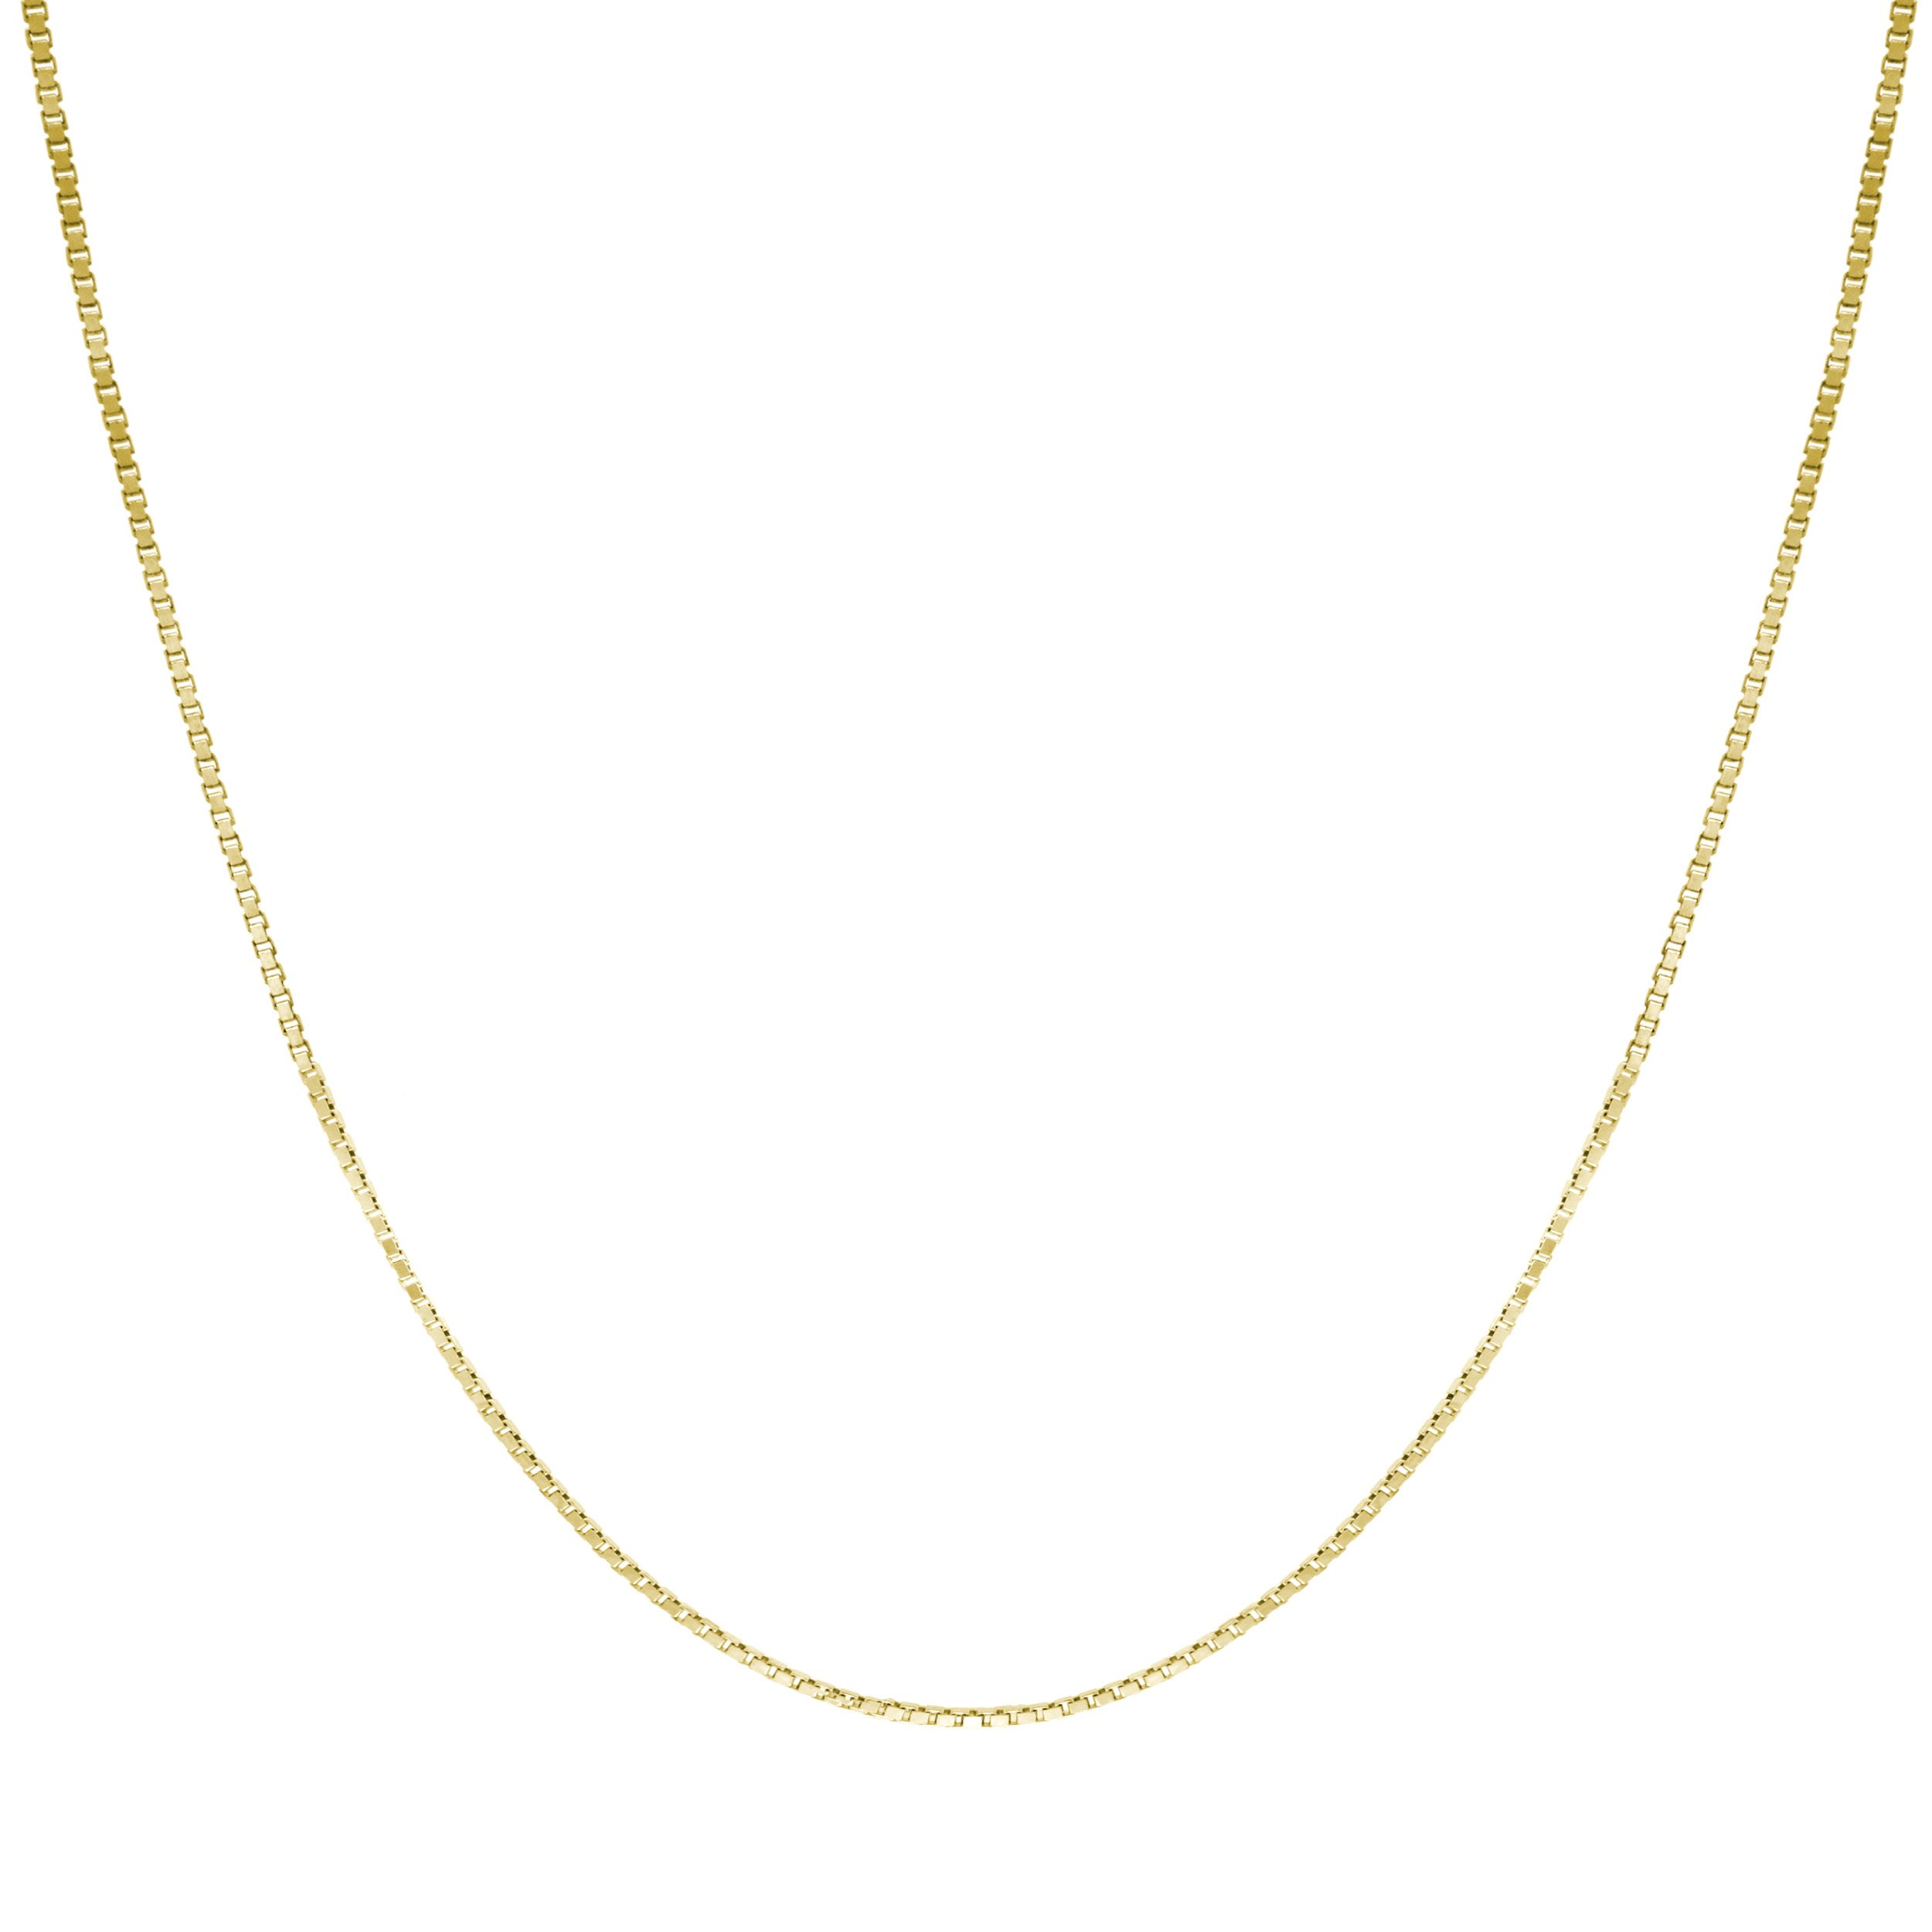 Honolulu Jewelry Company 14K Solid Yellow Gold 0.7mm Box Chain Necklace (24 Inches) by Honolulu Jewelry Company